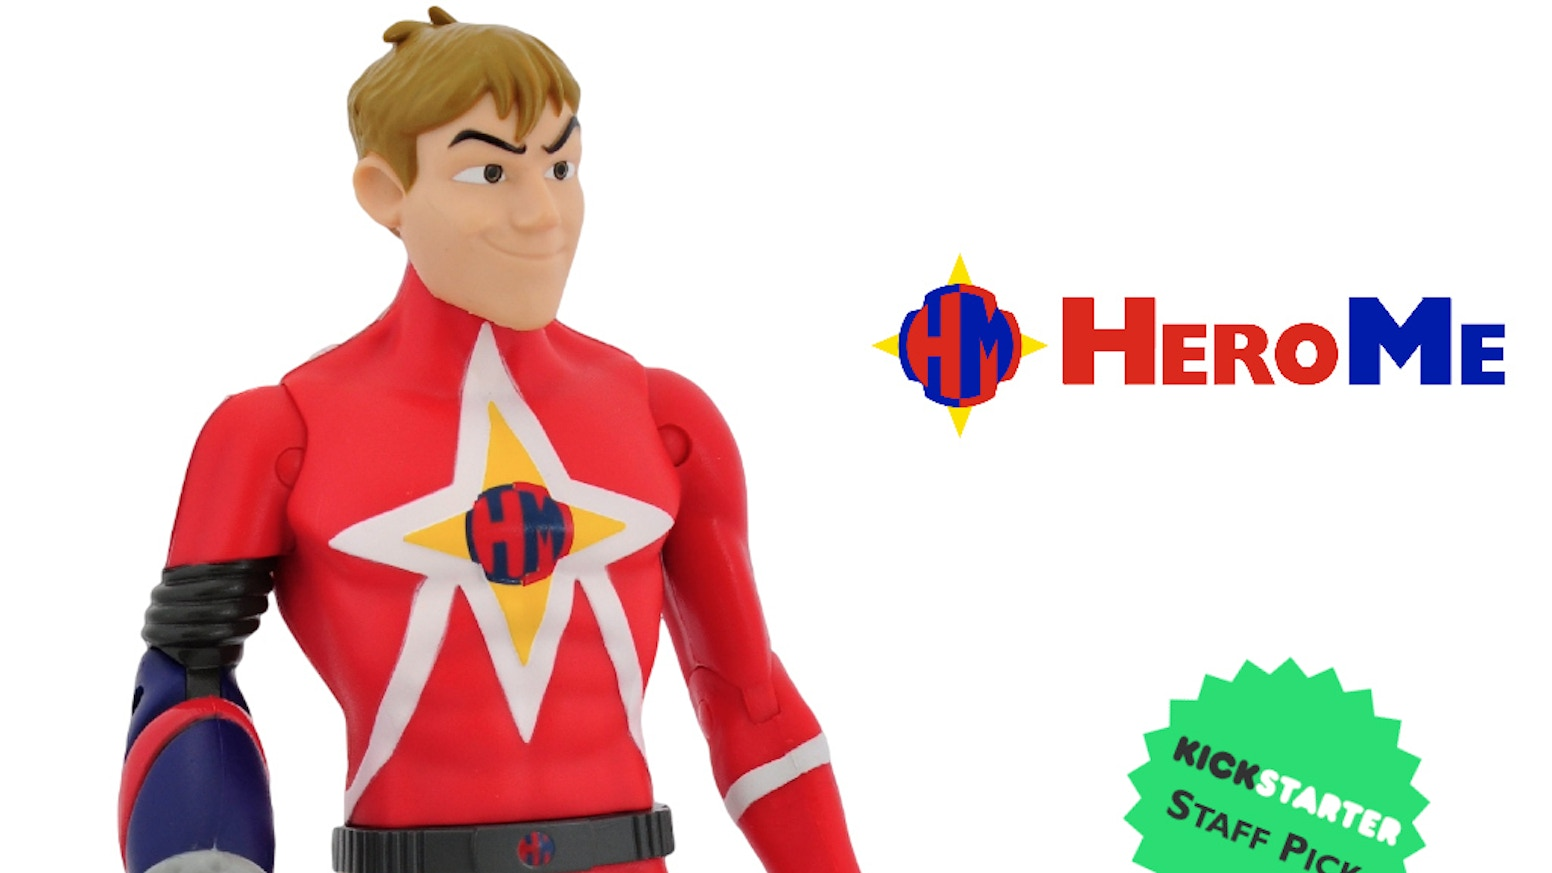 HeroMe inspires kids' creativity by allowing them to create their own superhero action figures.